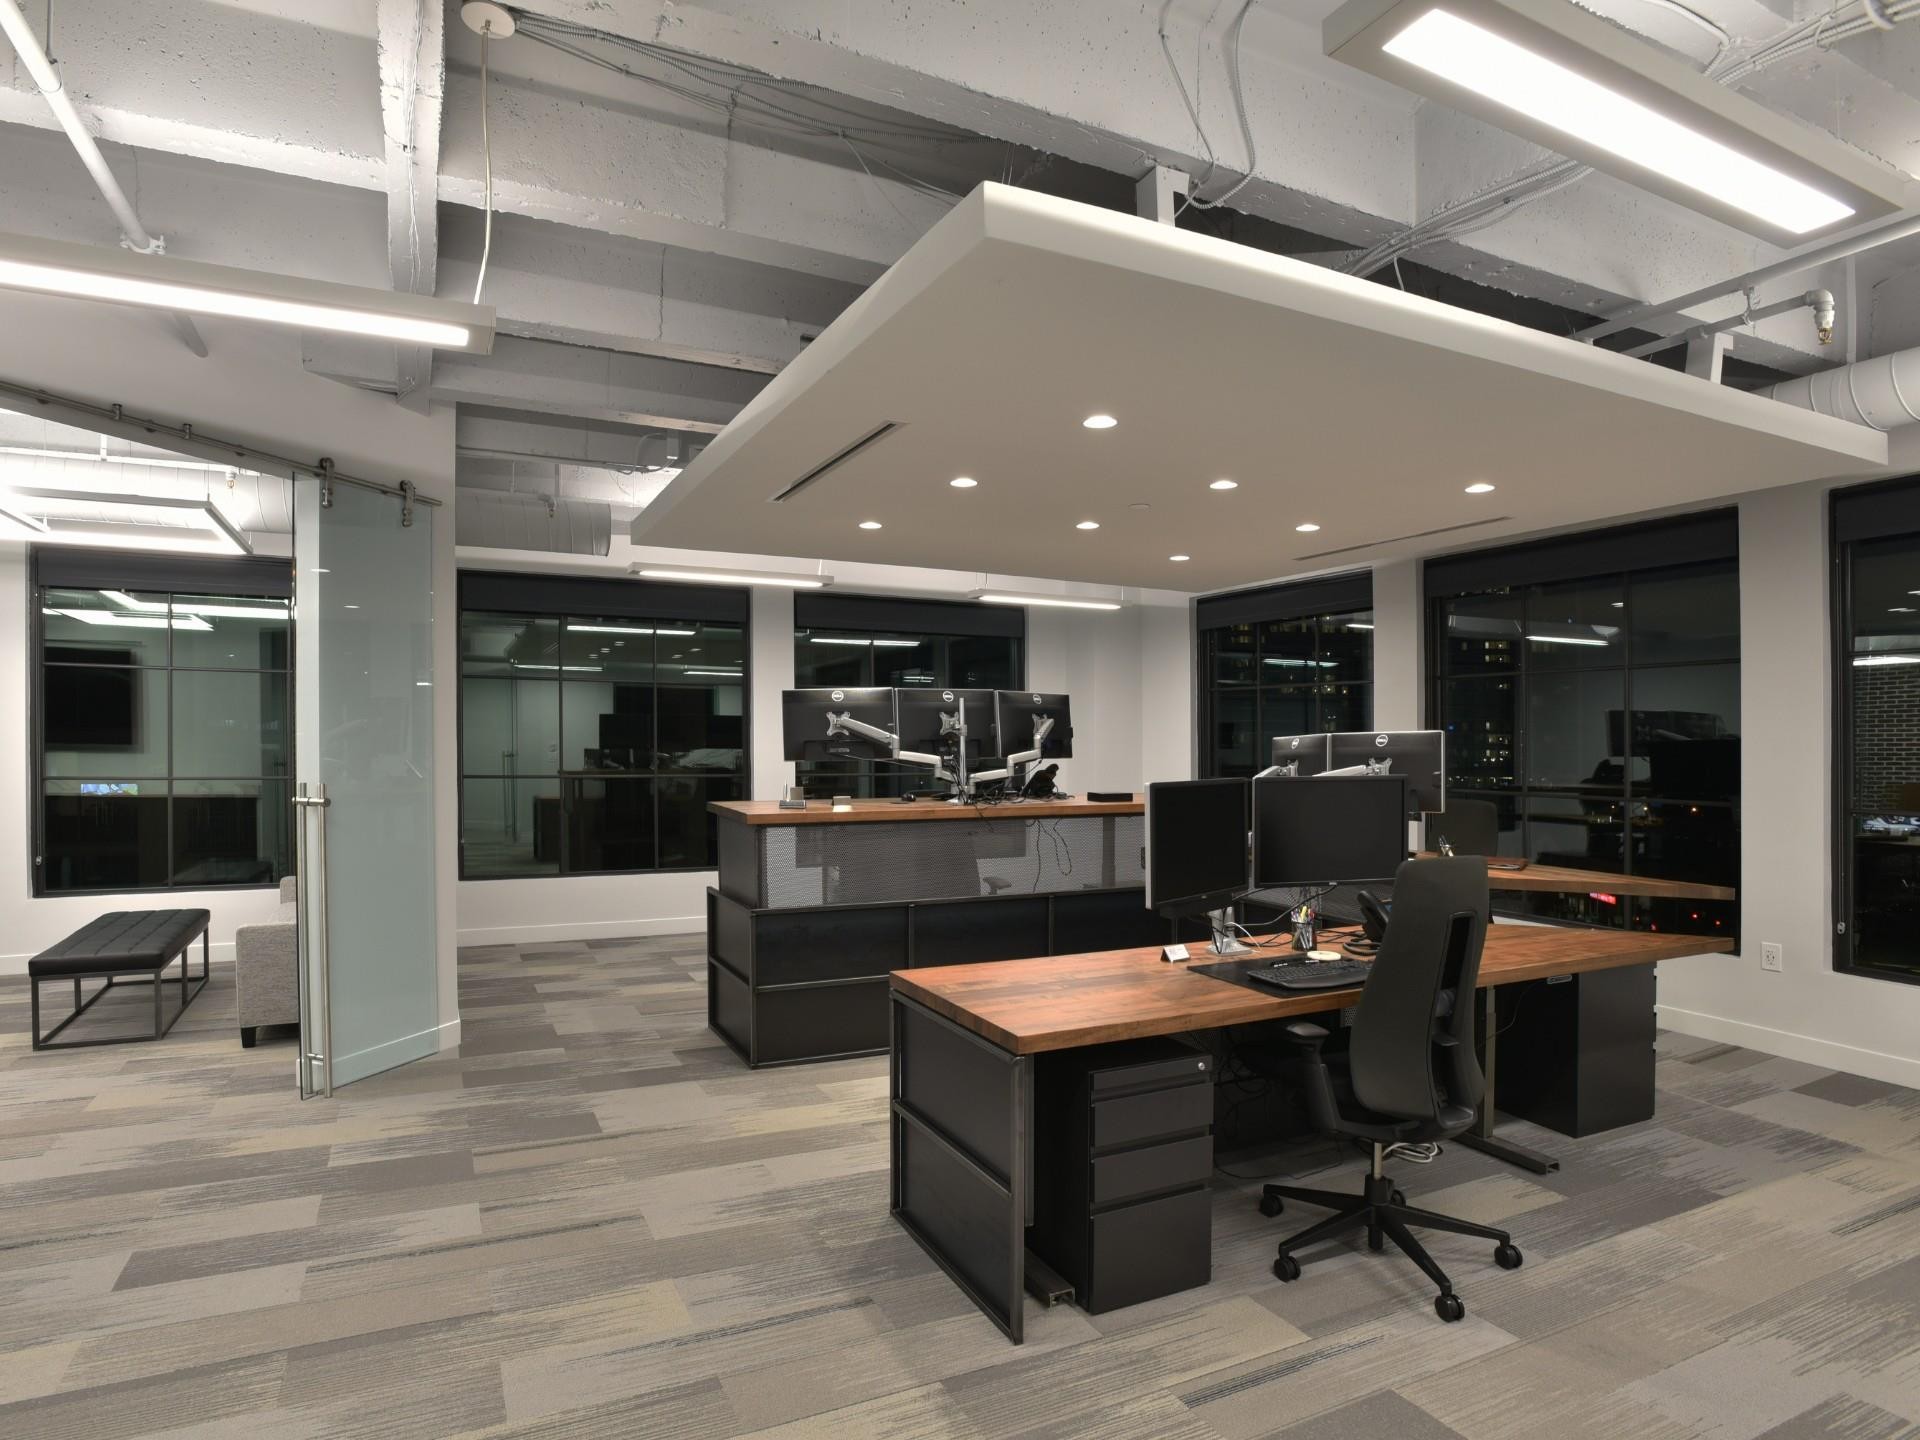 Work space with open ceiling, night photo surrounded by windows